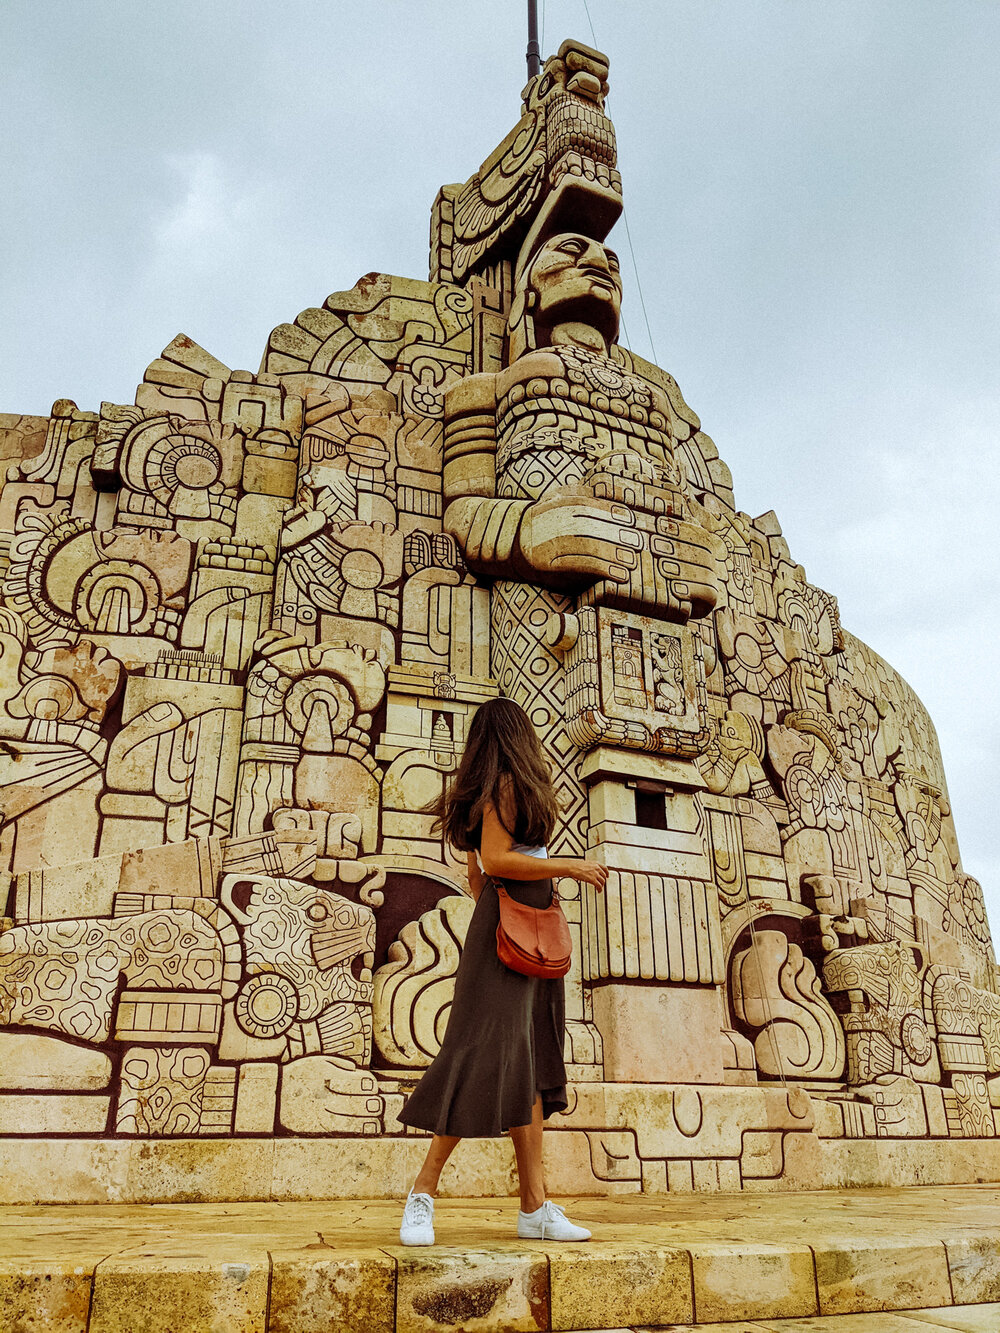 Rachel Off Duty: A Woman Standing in Front of the Monumento a la Patria, Merida